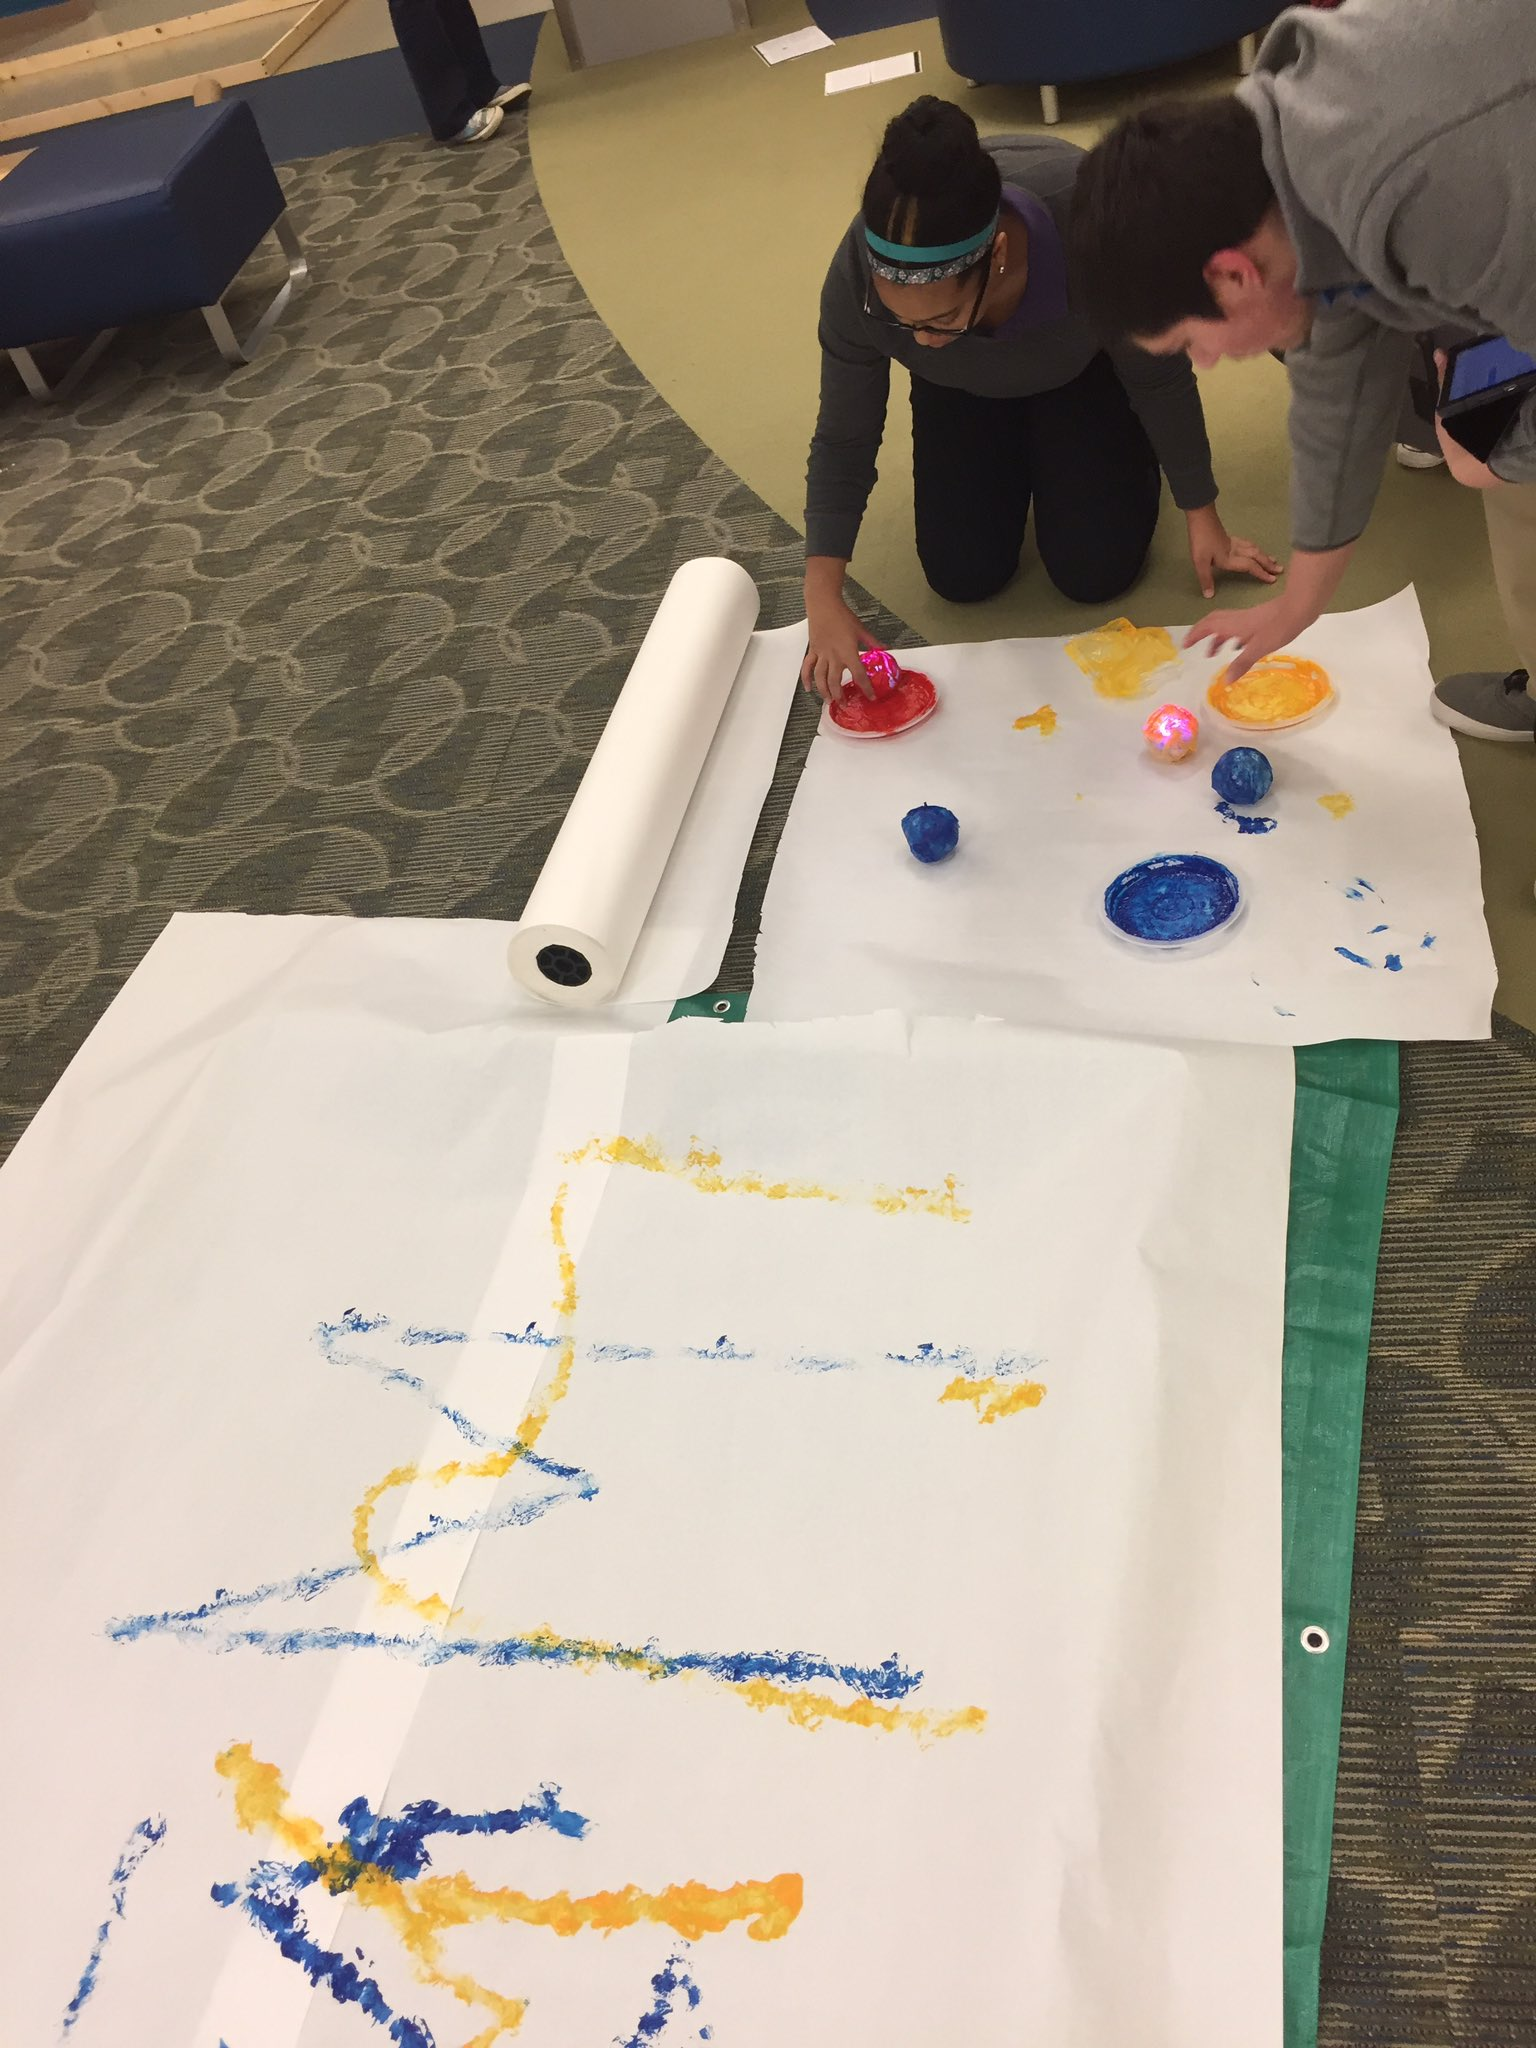 @Sphero #painting with #sphero ! #art and #technology #integration ! #OurBMSA @msalang  pic is of work in progress @biomedacademy https://t.co/tHNKdos8Ew